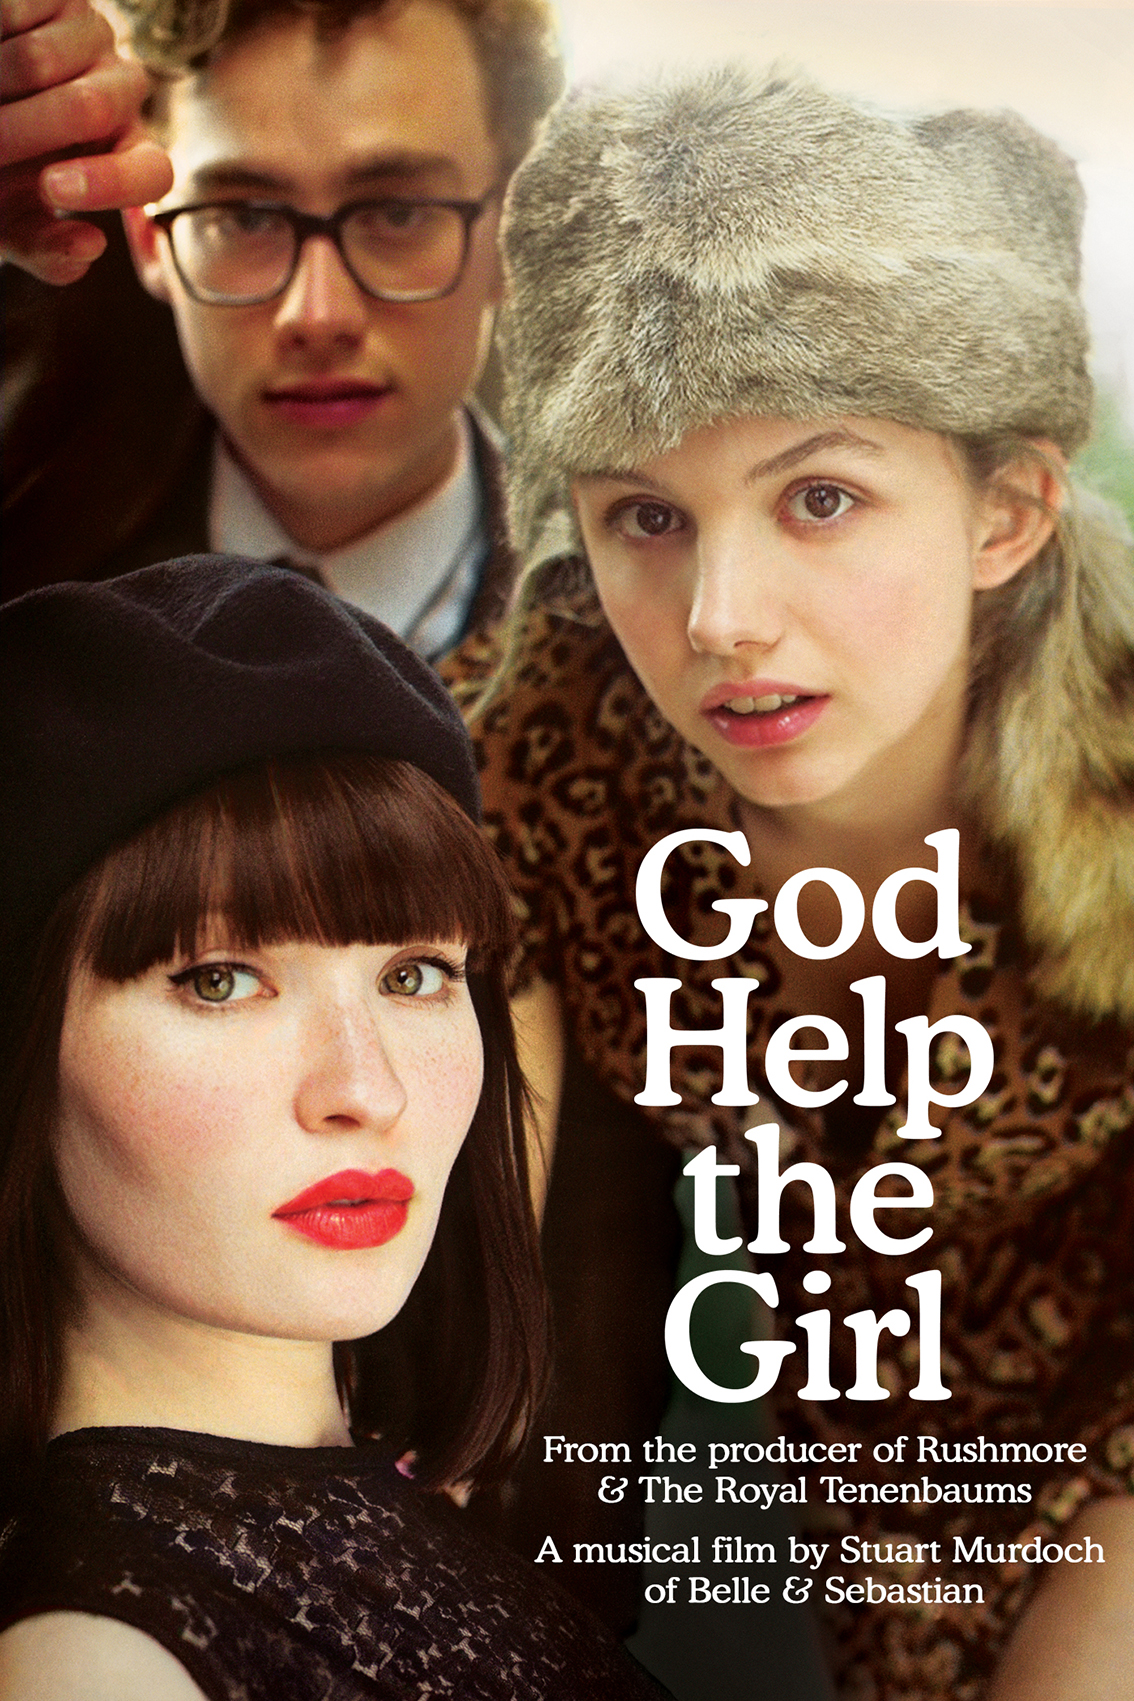 God Help The Girl [2014 UK Movie] Drama, Musical, Romance